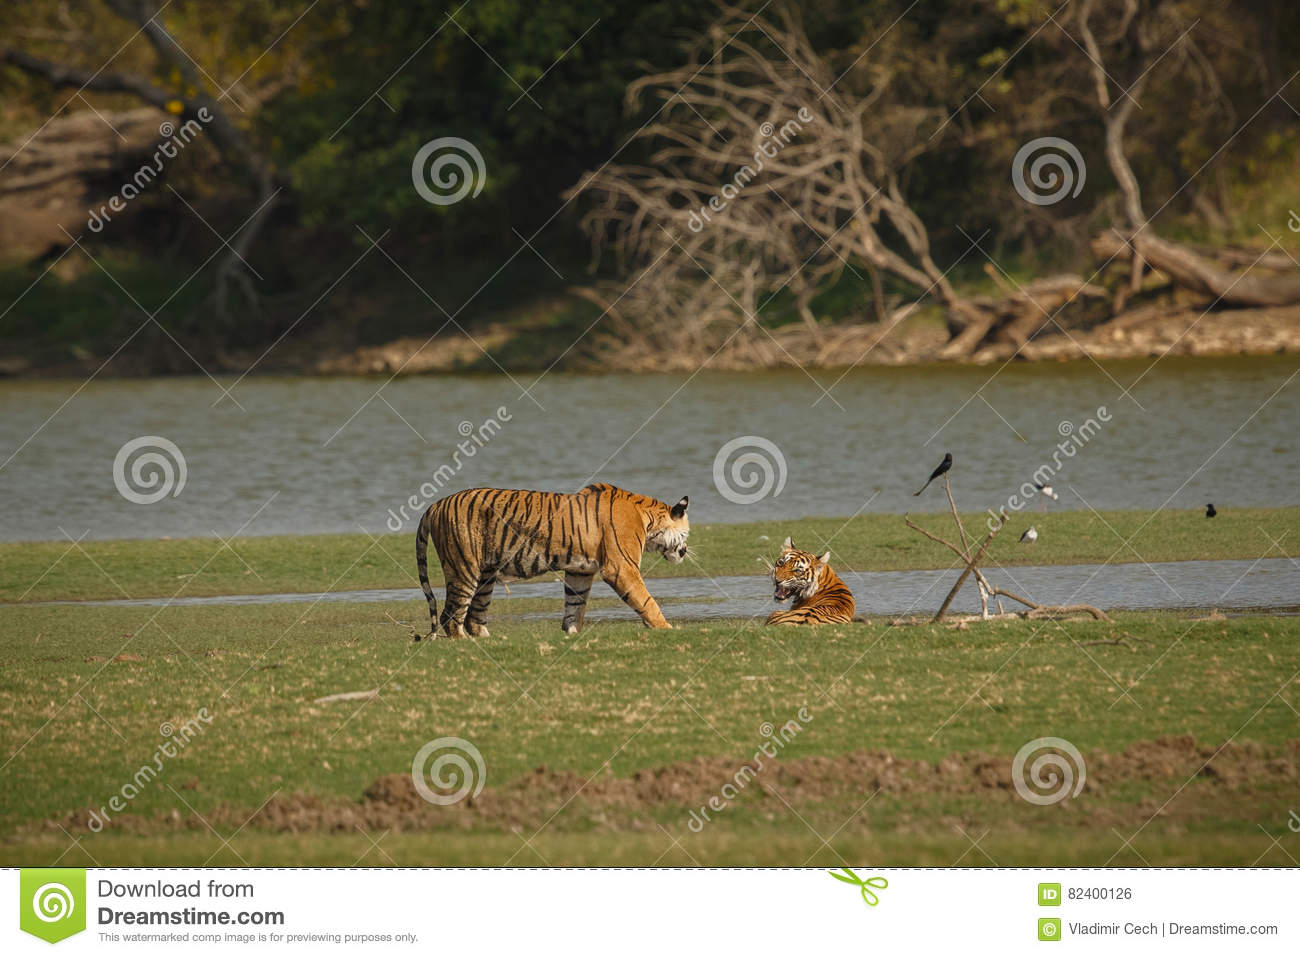 Tigers in the indian nature